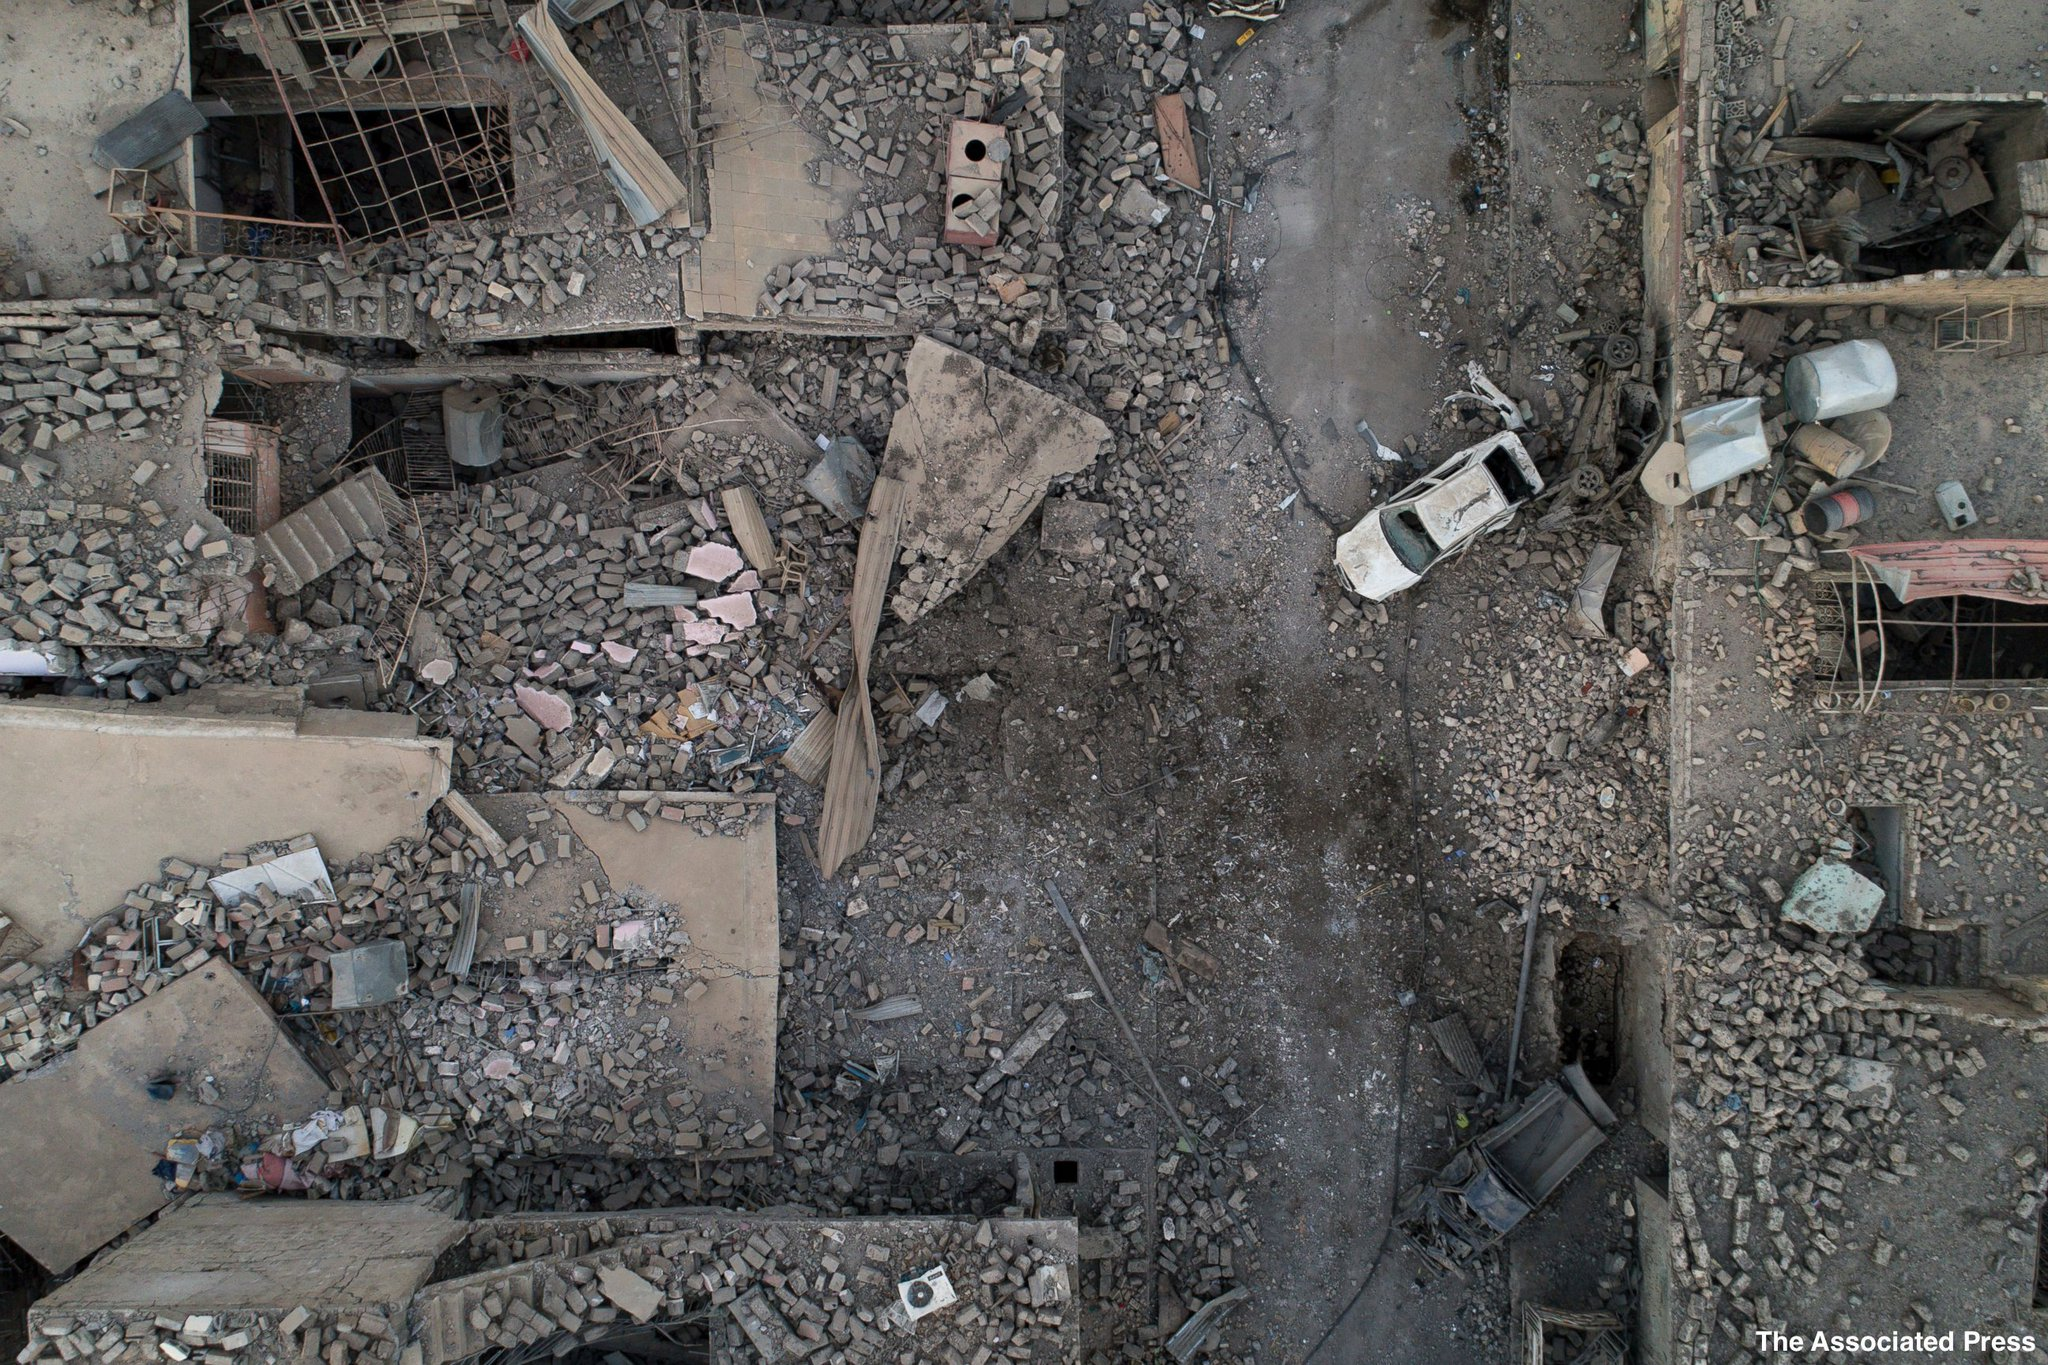 Drone captures Mosul's destruction from above, days after the city was liberated from ISIS. https://t.co/R6gZZHN1Rx https://t.co/ipx56l0unB